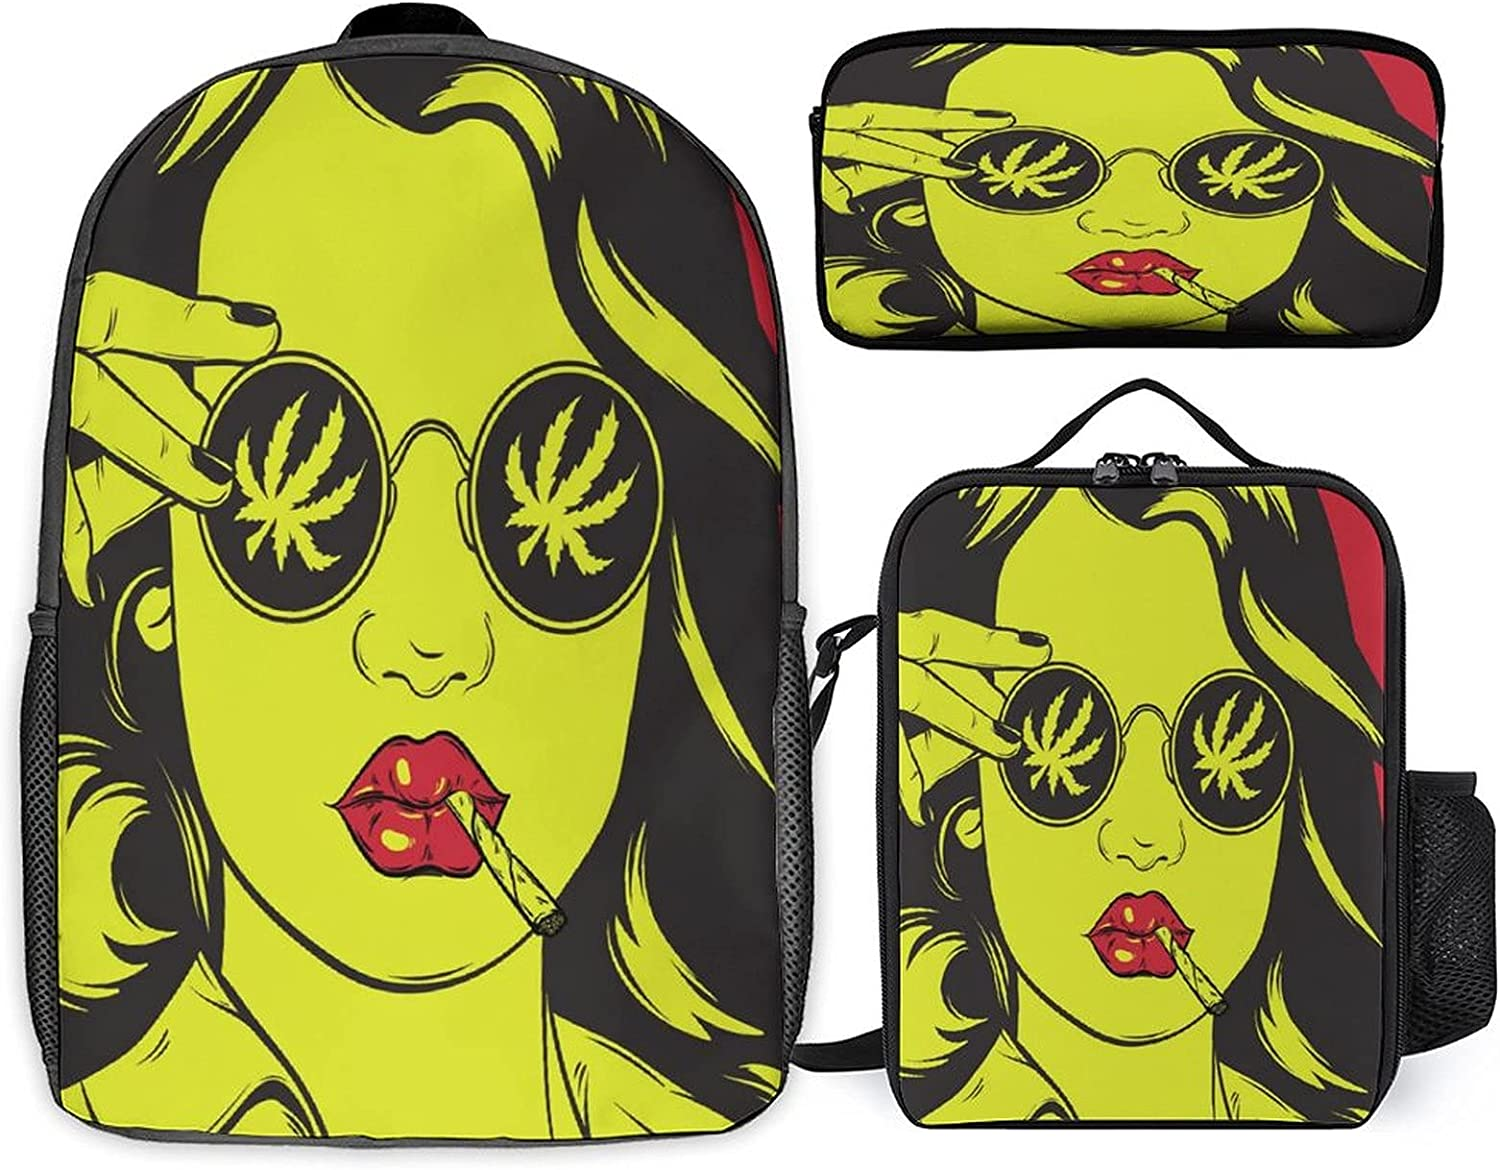 Stoner Art Three-piece set of Super popular Excellence specialty store schoolbag + st student